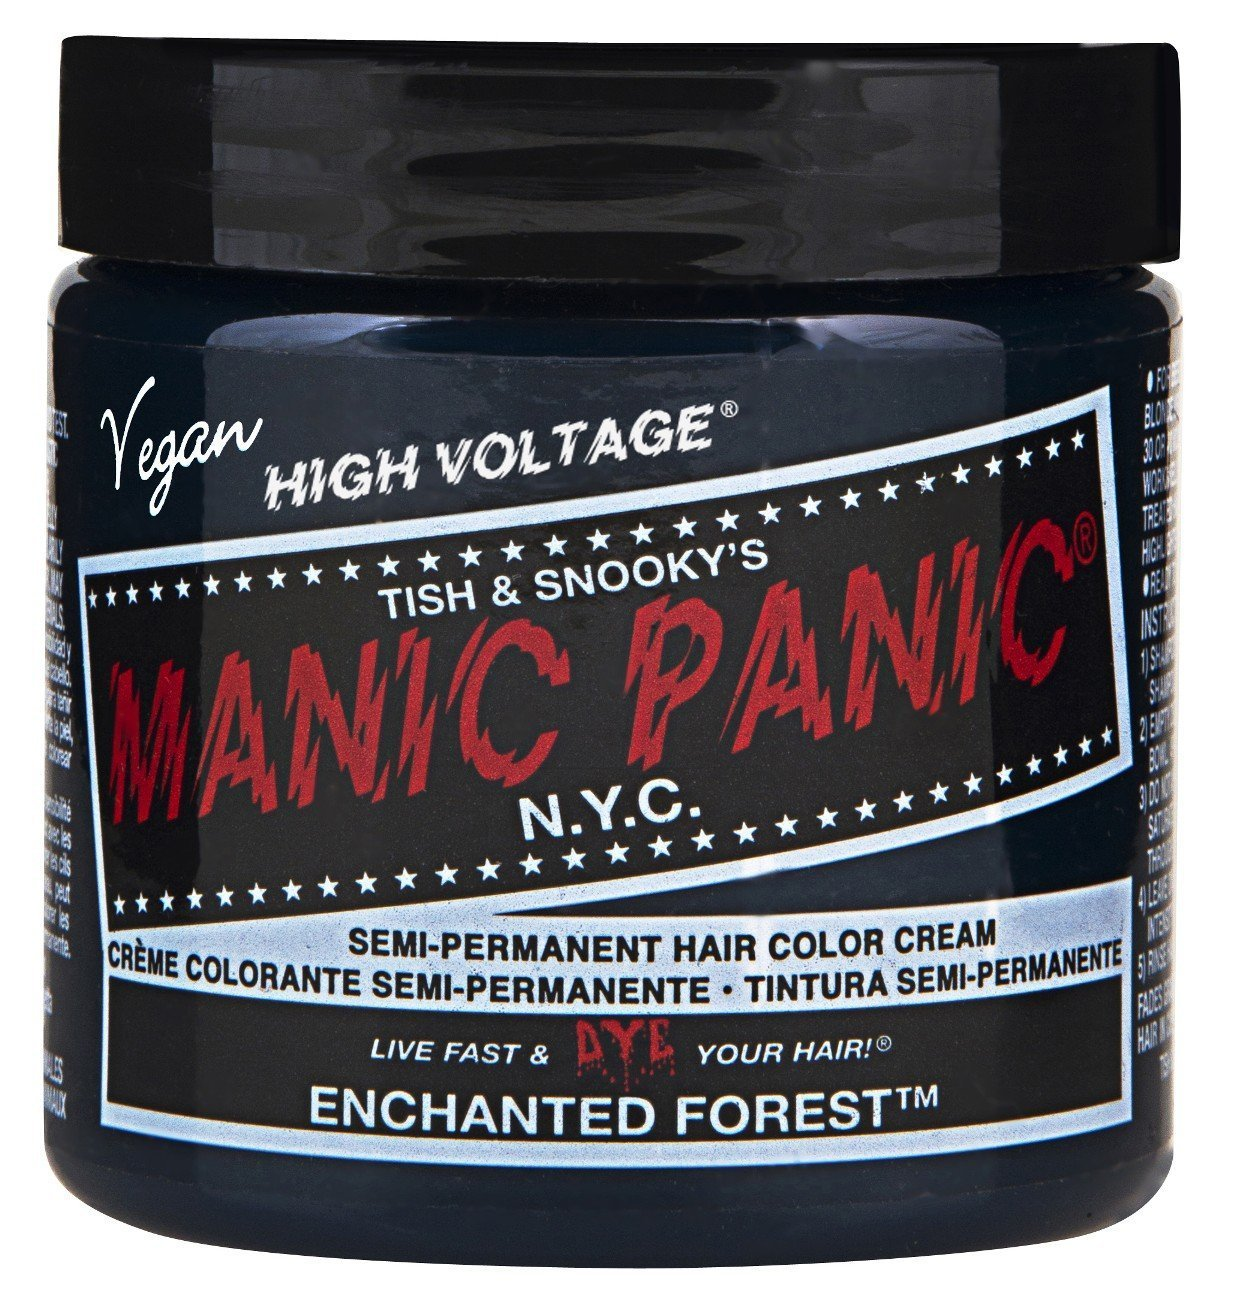 Manic Panic semi-permament Haircolor Foresta incantata 4oz